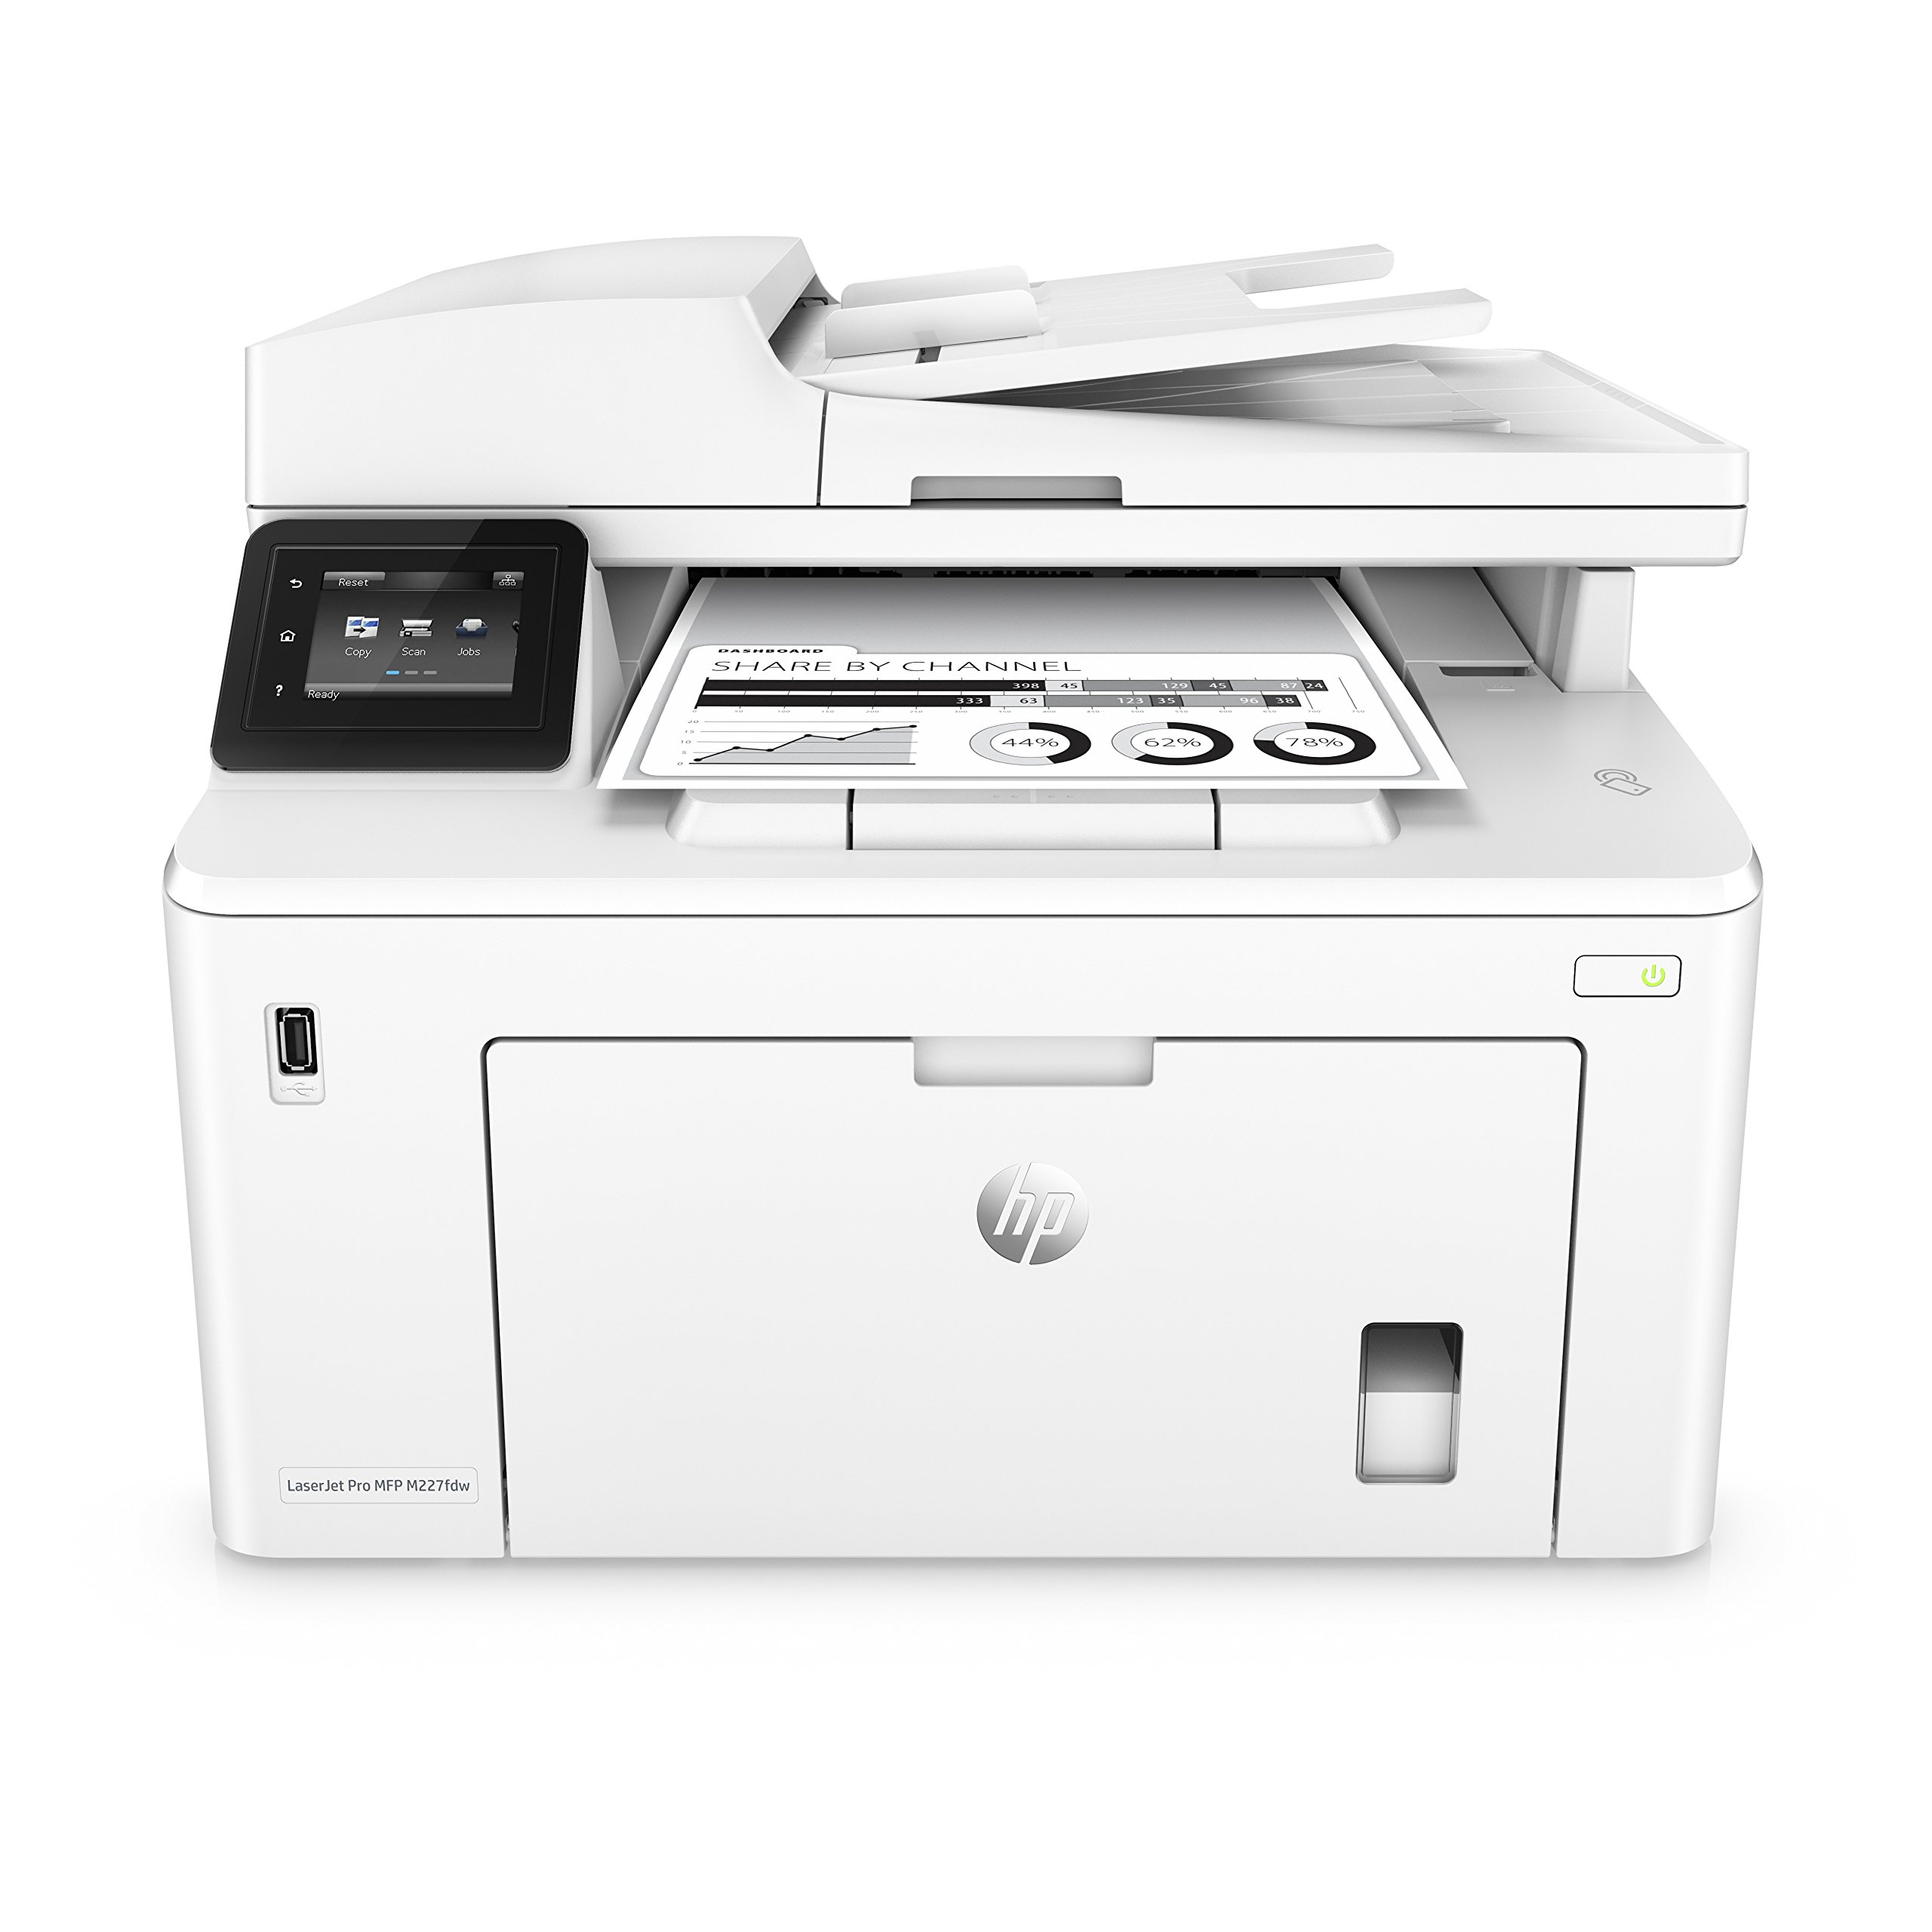 HP LaserJet Pro M227fdw All-in-One Wireless Laser Printer (G3Q75A). Replaces M225dw Laser Printer by HP